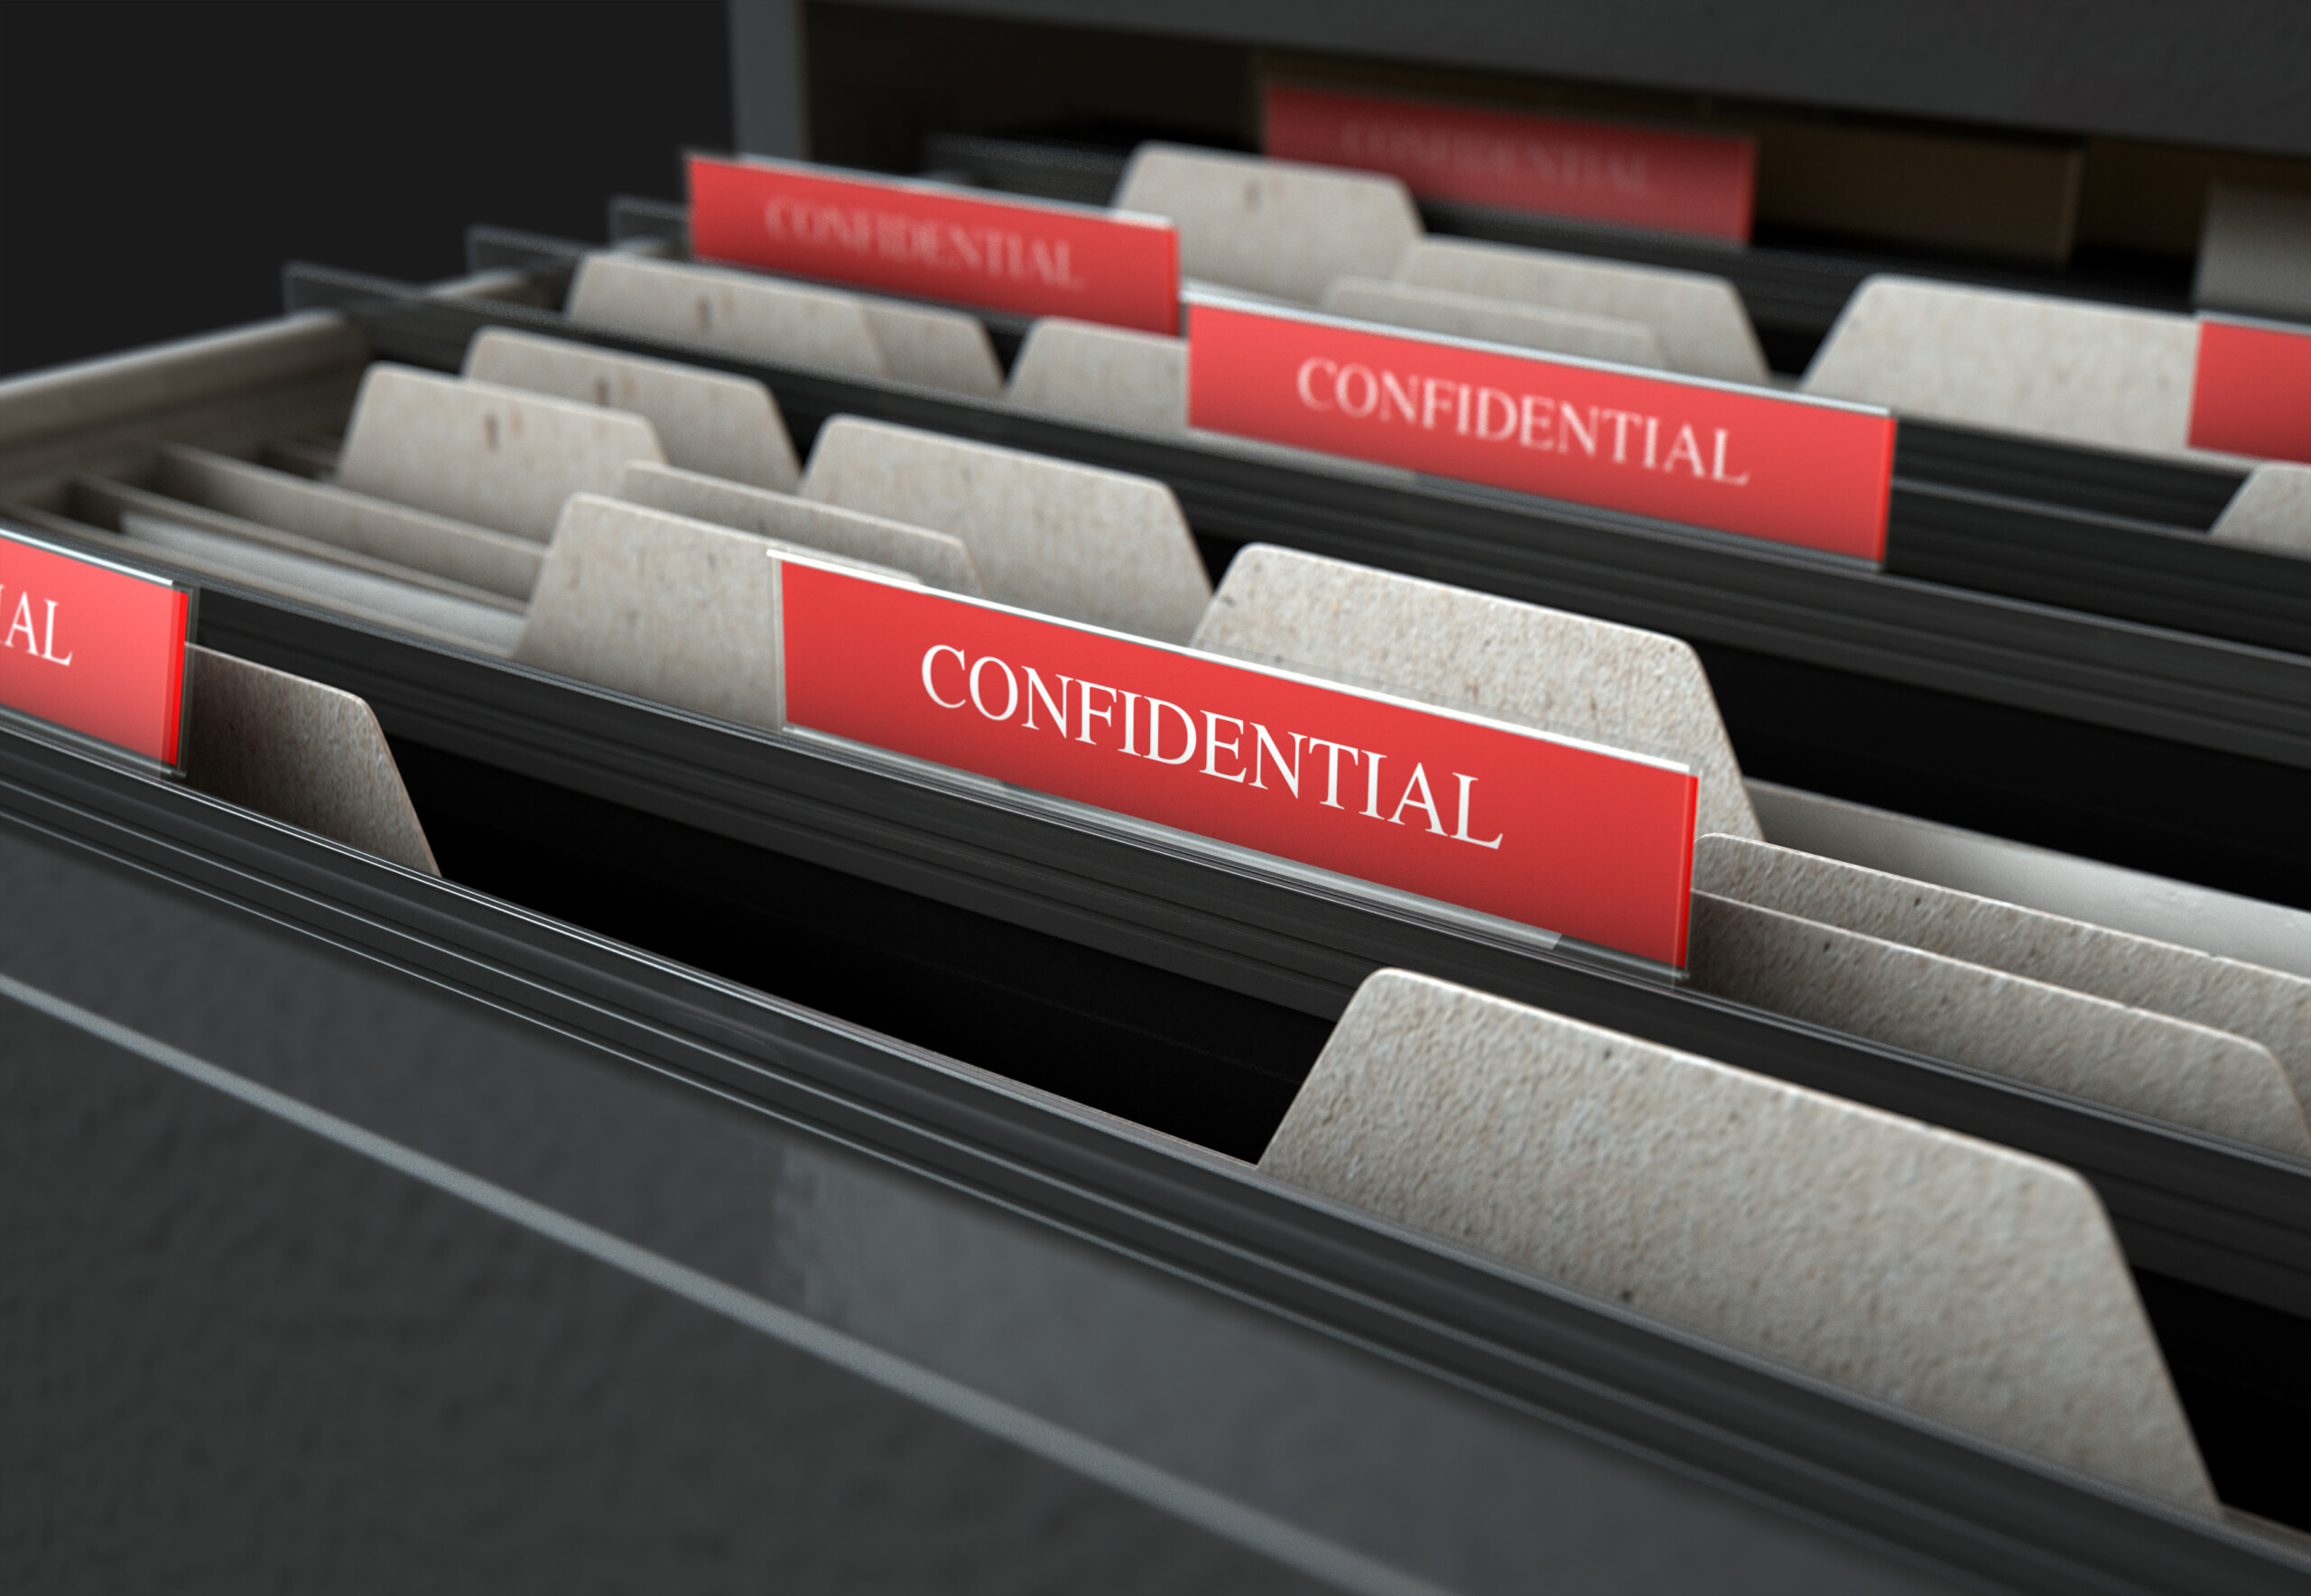 Confidential Filing Folders in Drawer